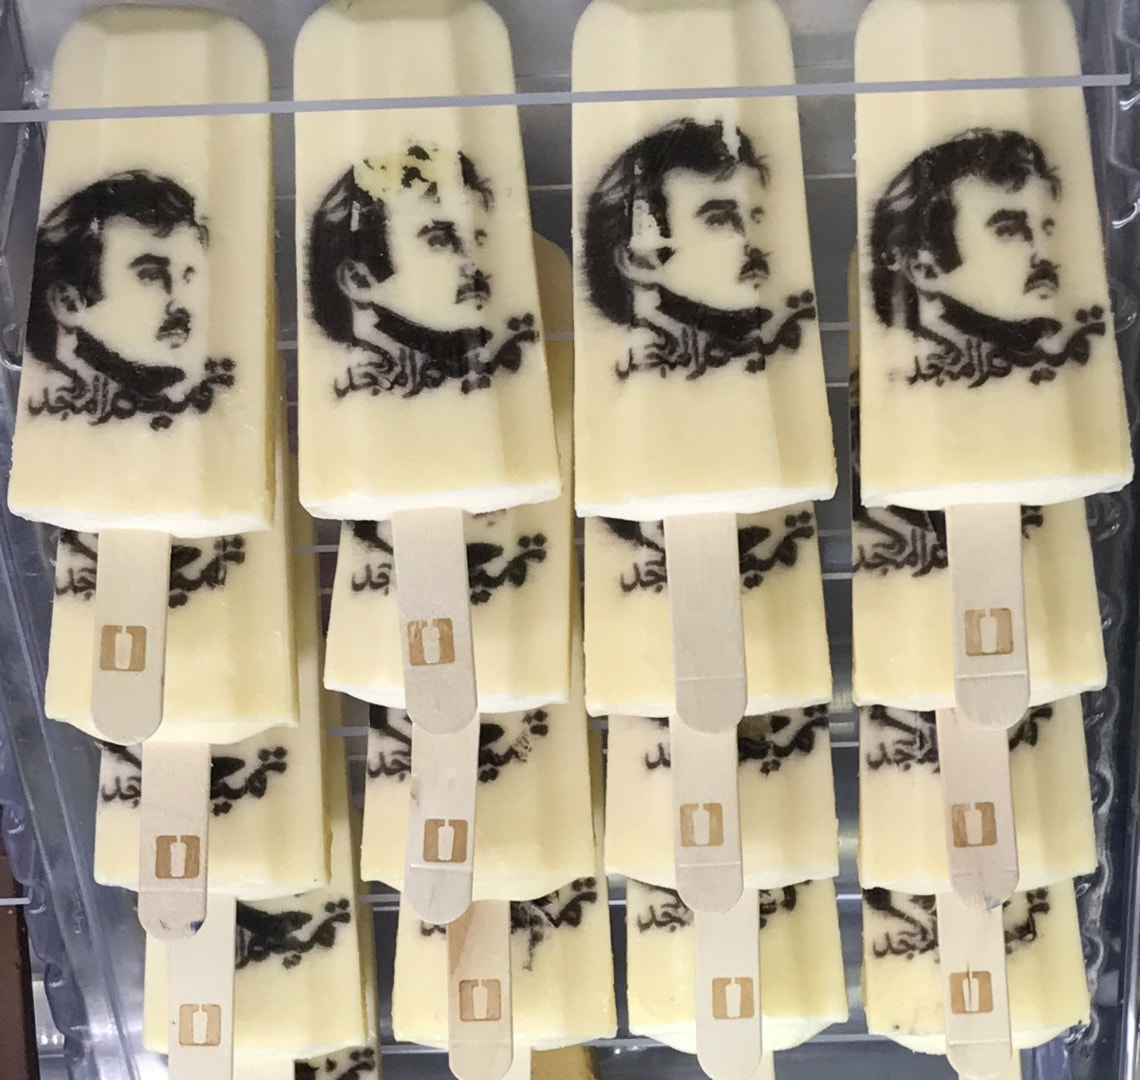 11 incredible things to do in Qatar - ice lollies with the Emir's picture on